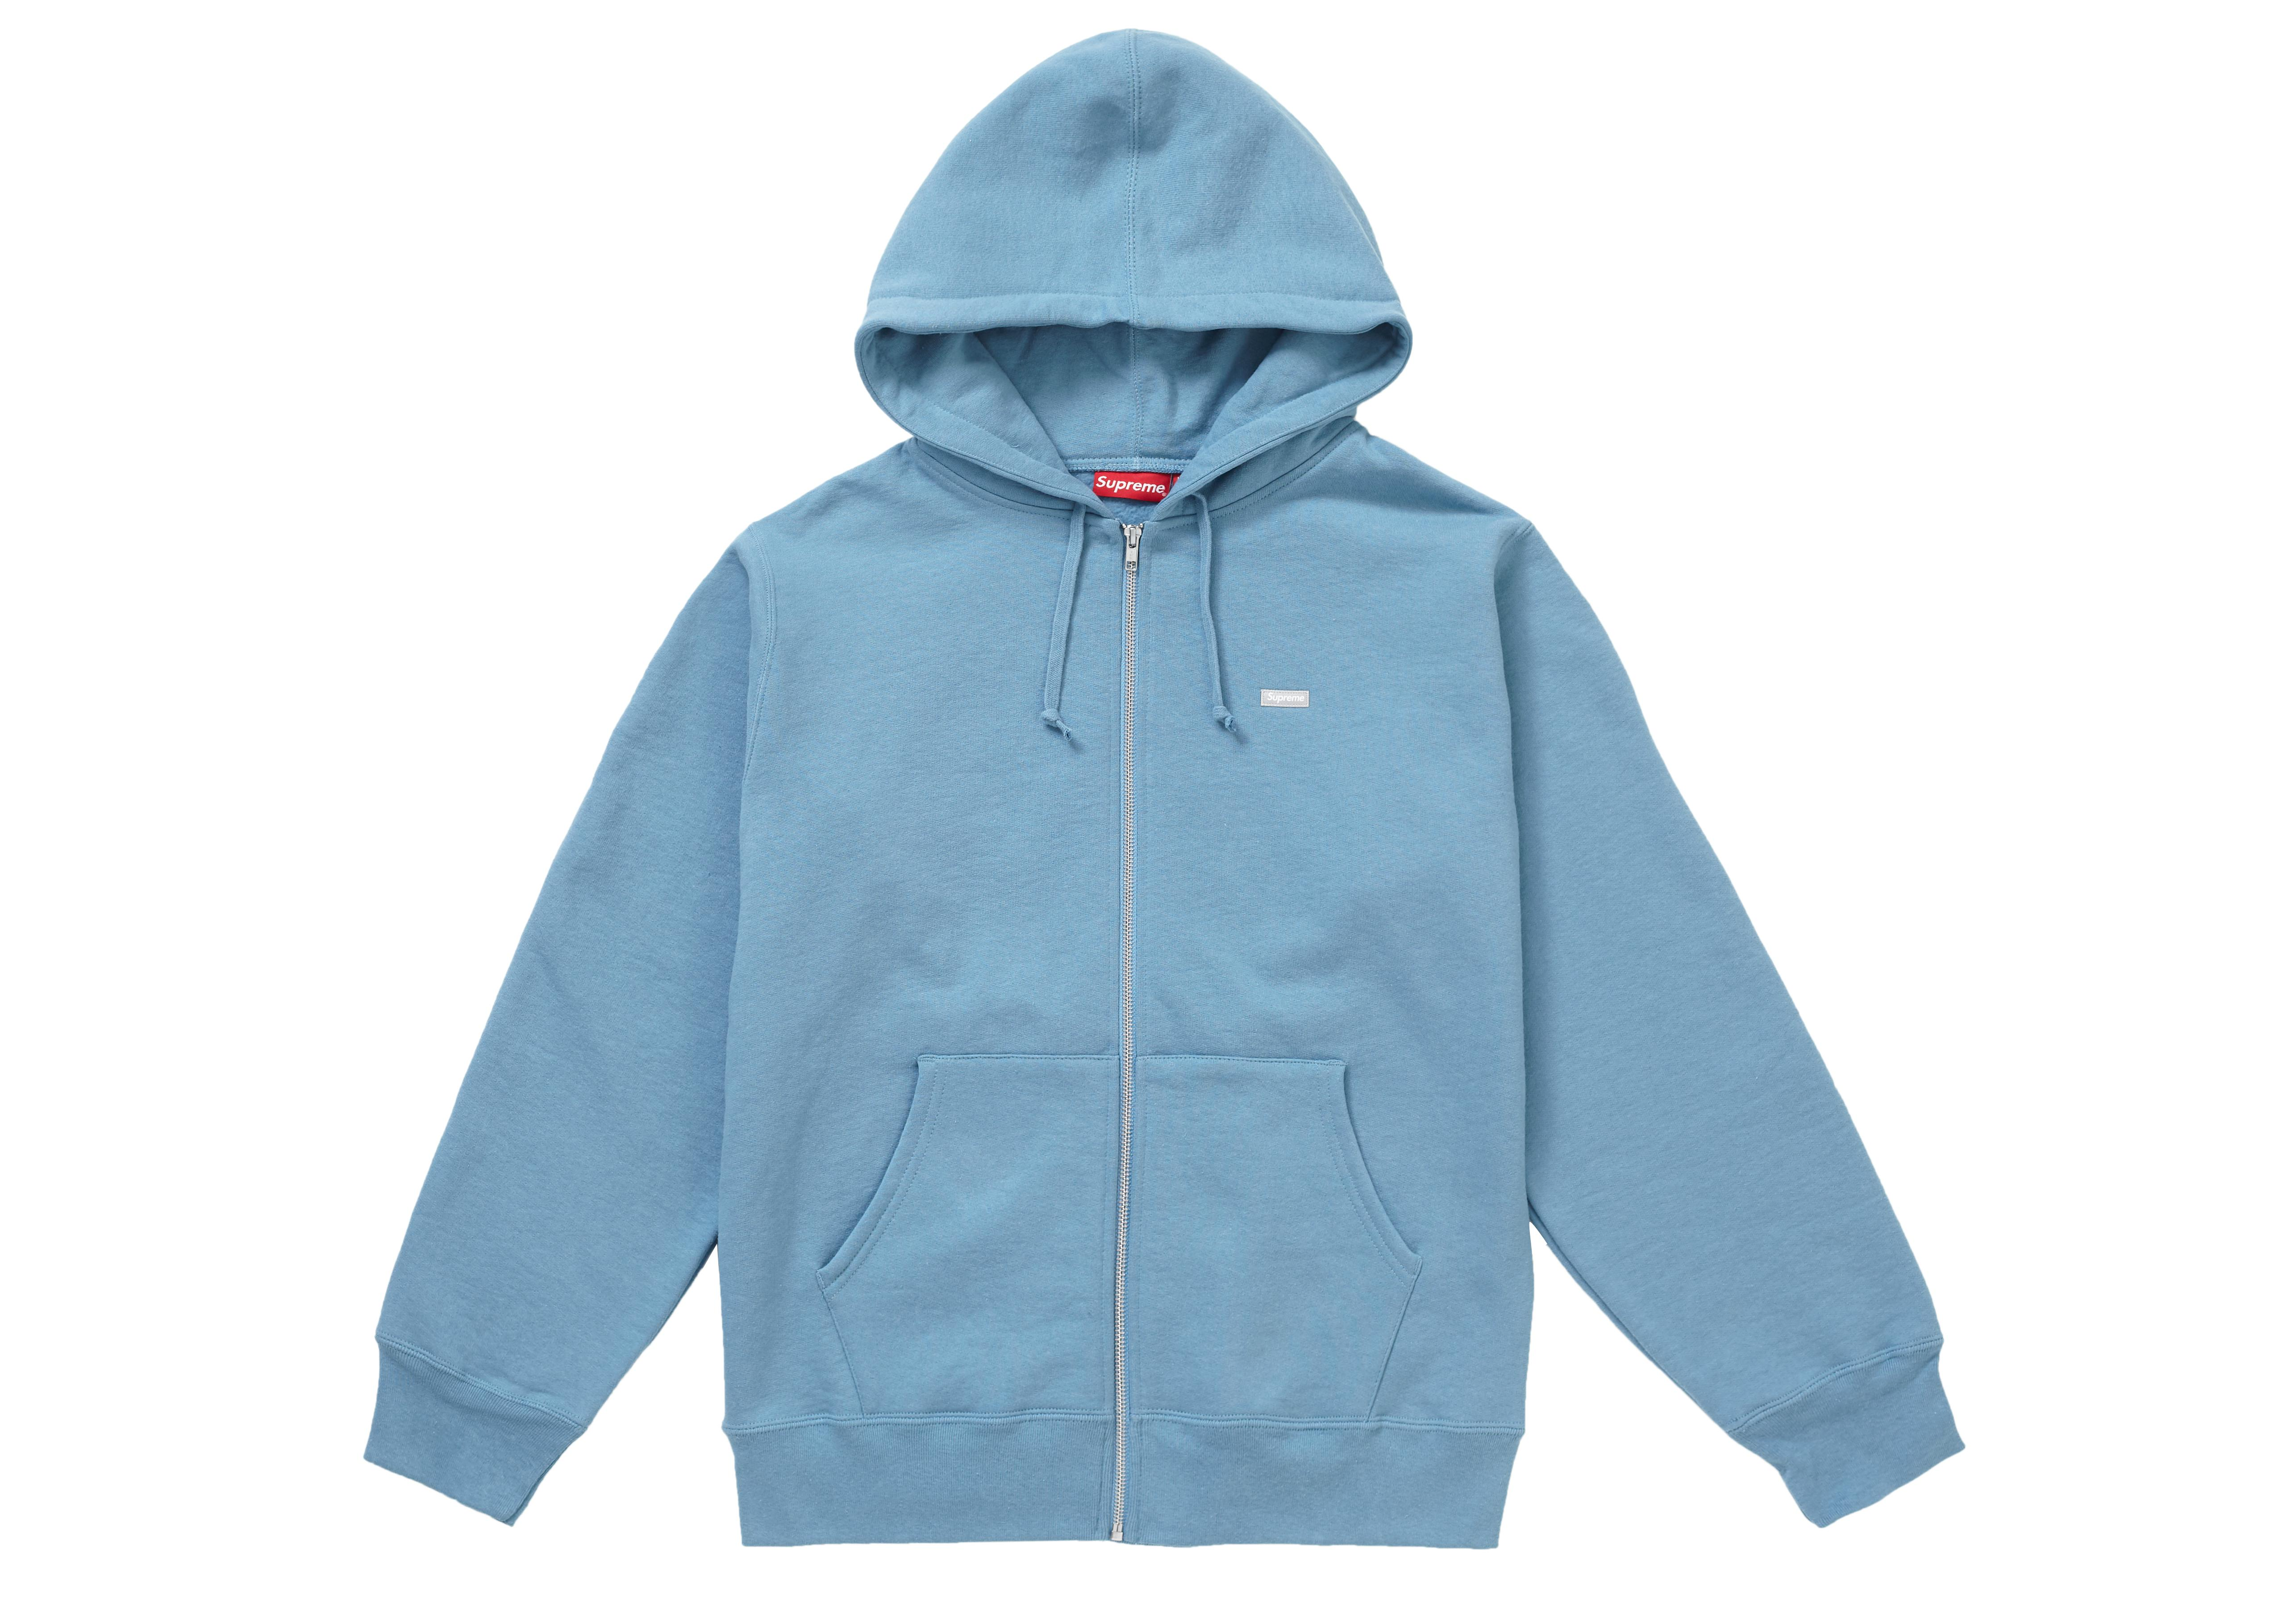 a8465b5b15dc Supreme - Reflective Small Box Zip Up Sweatshirt Dusty Blue for Men - Lyst.  View fullscreen